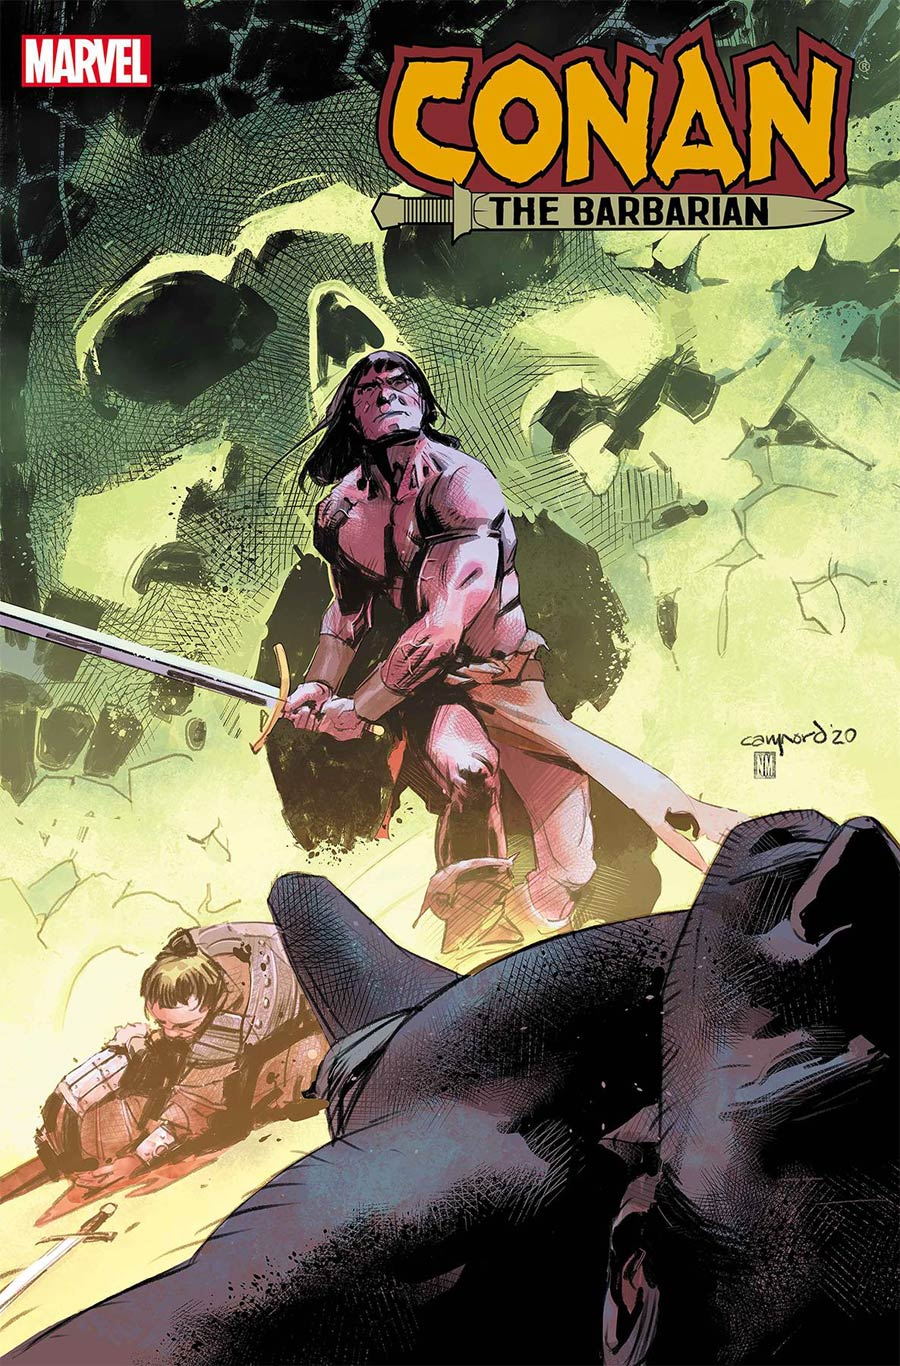 Conan The Barbarian Vol 4 #16 Cover B Variant Cary Nord Cover